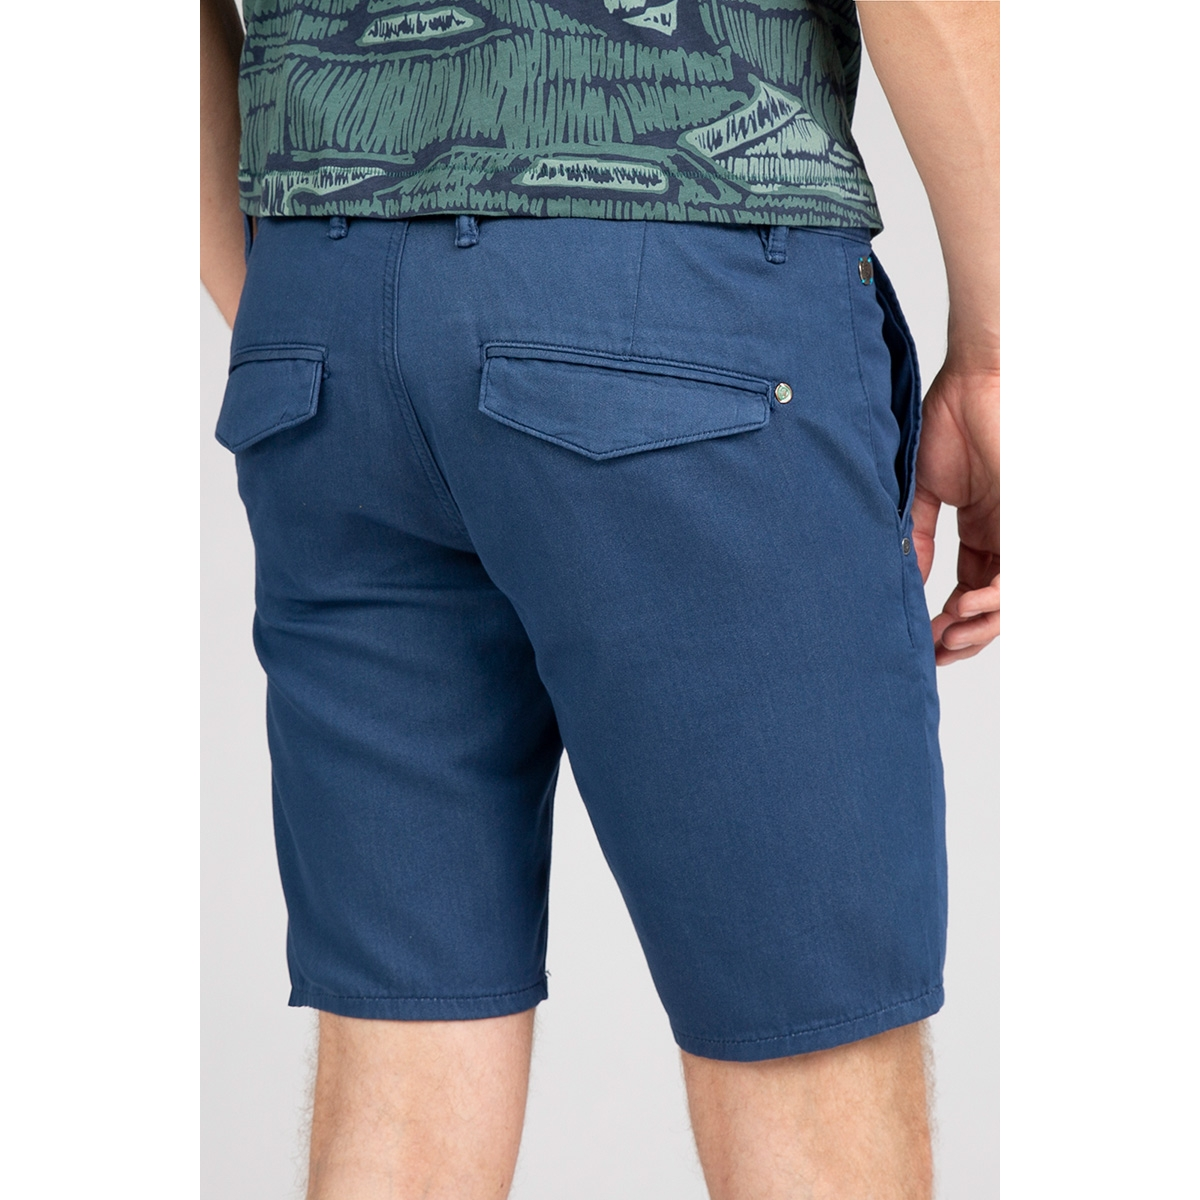 chino shorts stretch sweat csh203112 cast iron korte broek 5117